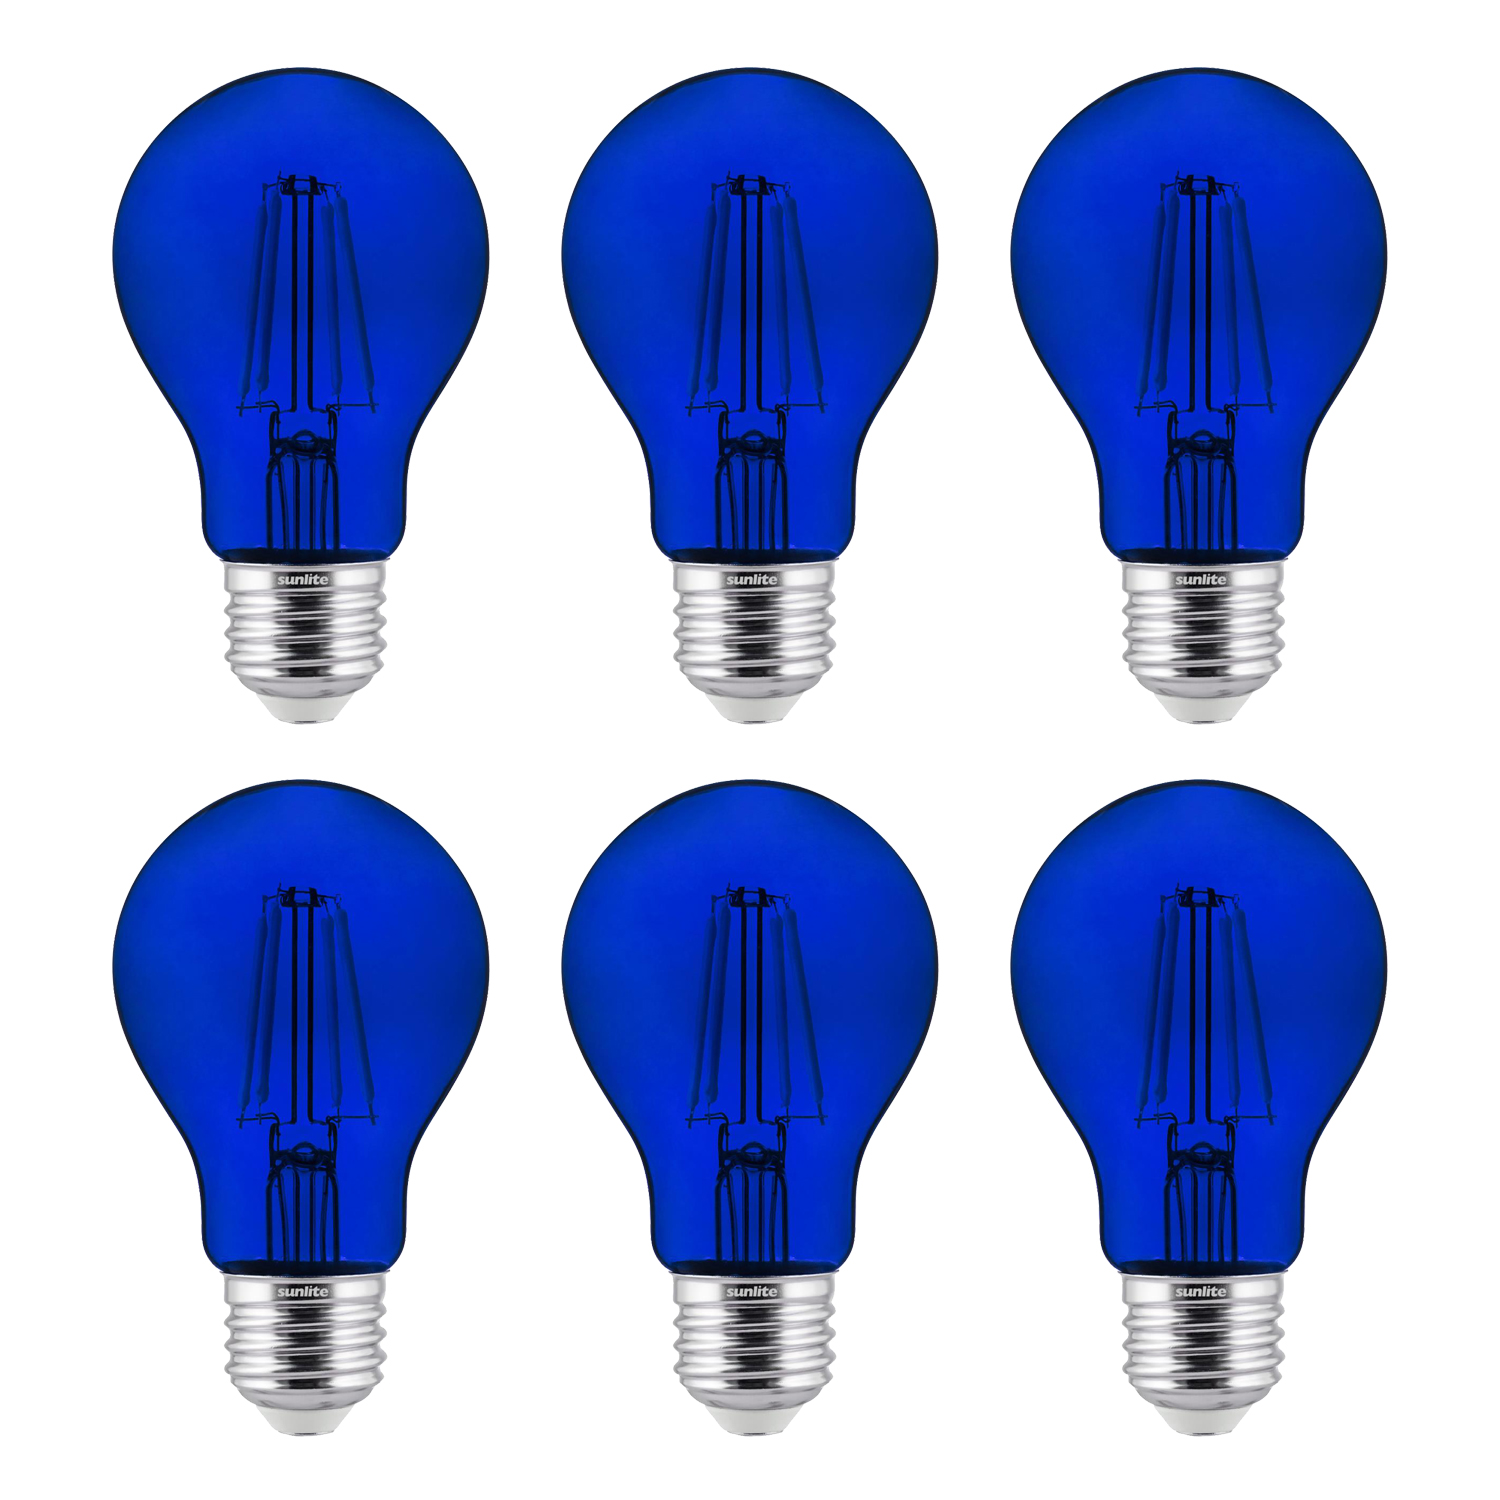 6-Pack Sunlite LED Transparent Blue A19 Filament Bulbs, 4.5 Watts, Dimmable, UL Listed